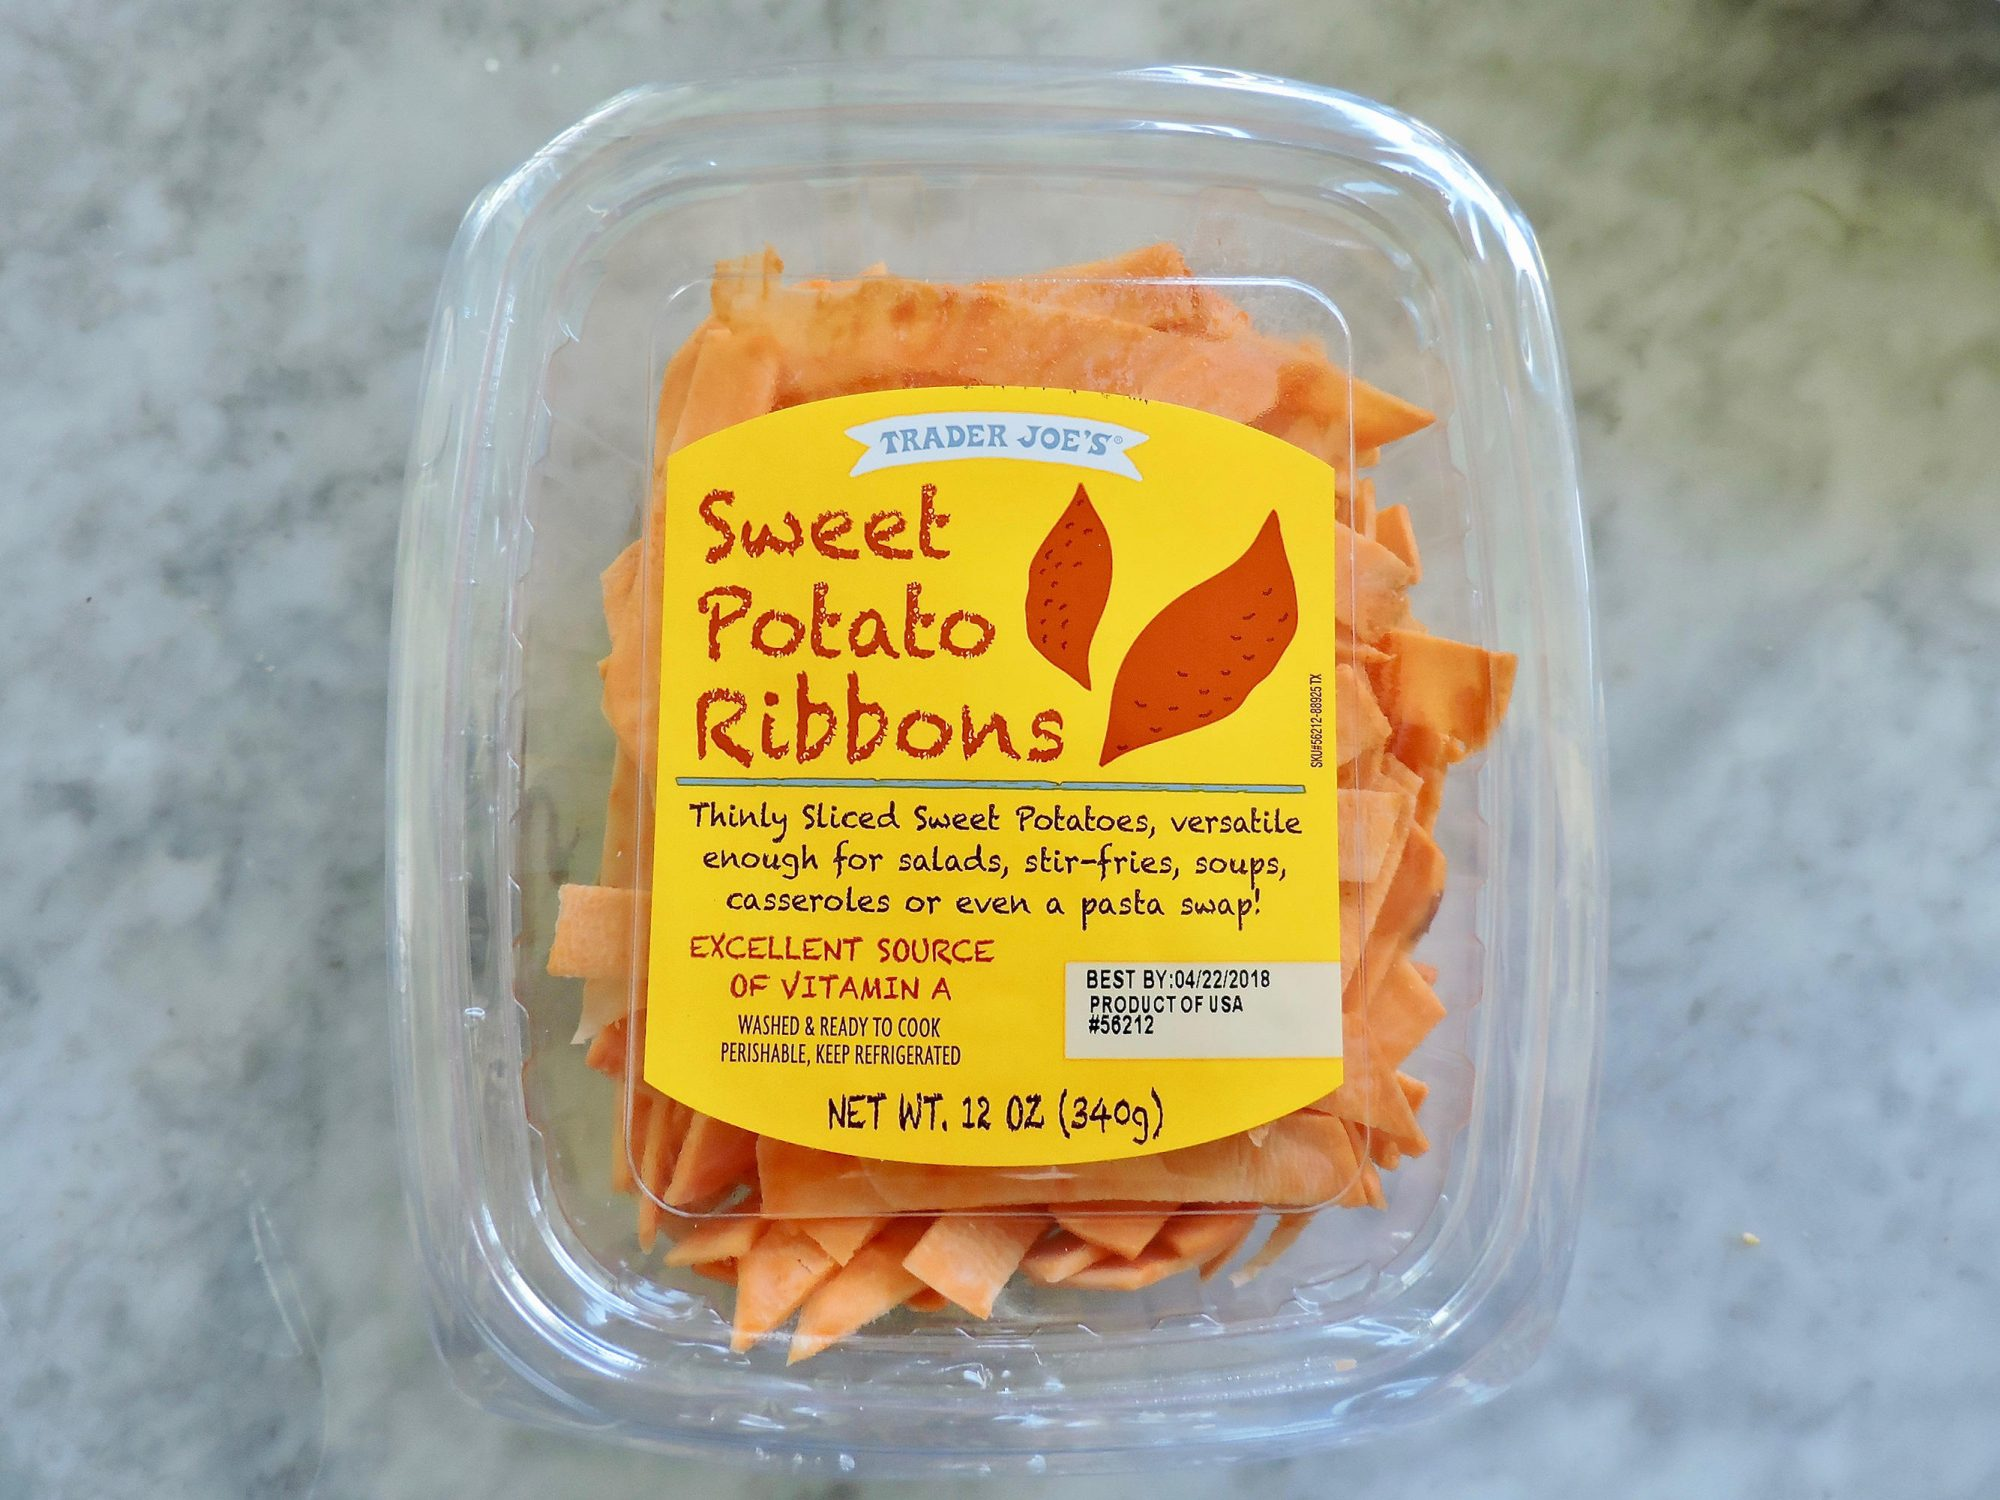 15 Nutritionist-Approved Trader Joe's Foods for $5 or Less 1804w-Trader-Joes-Sweet-Potato-Ribbons